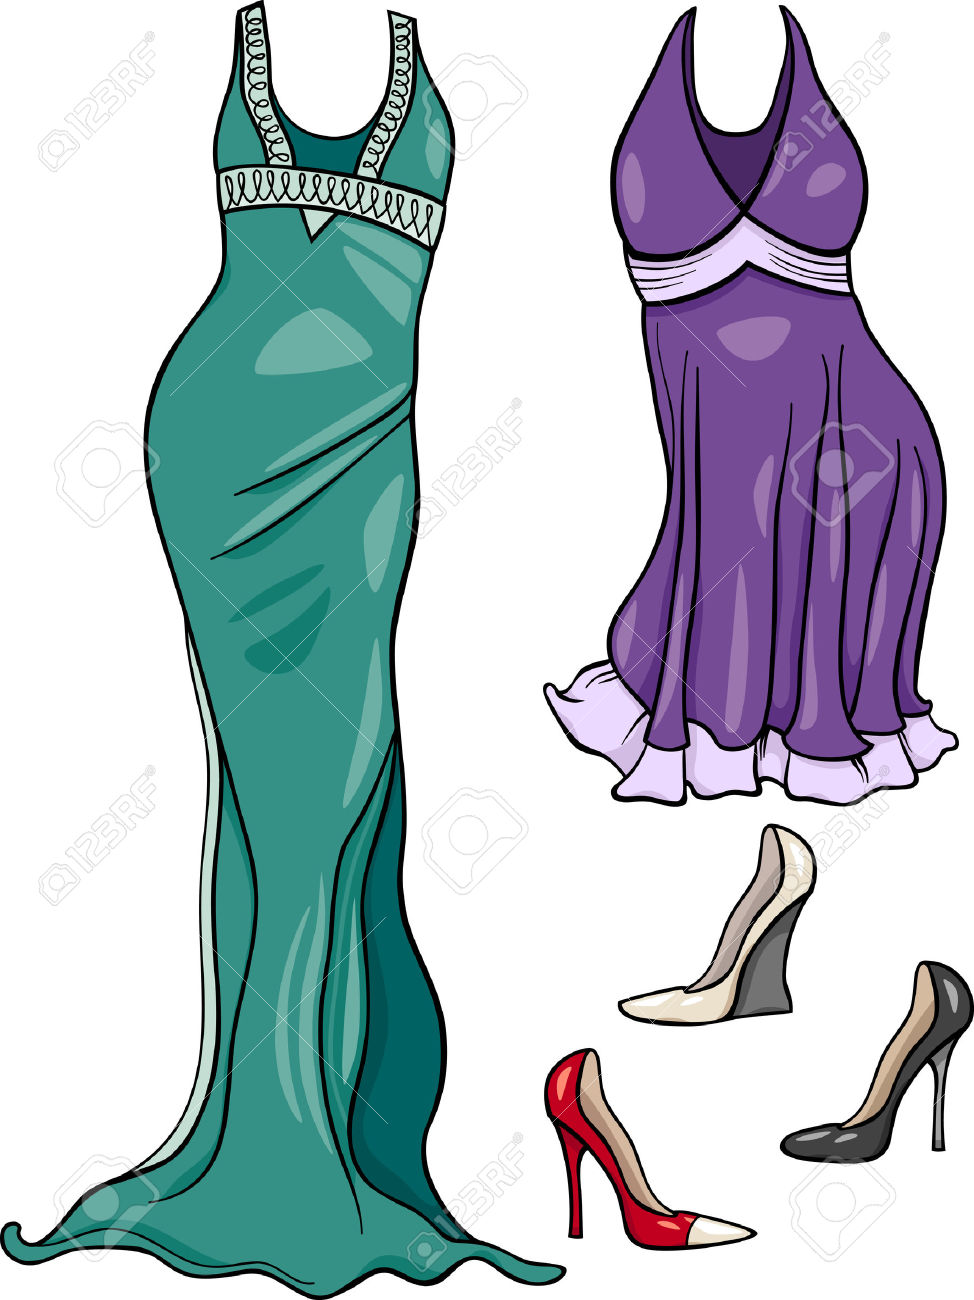 Cartoon Illustration Of Women Evening Dresses And Shoes Objects.